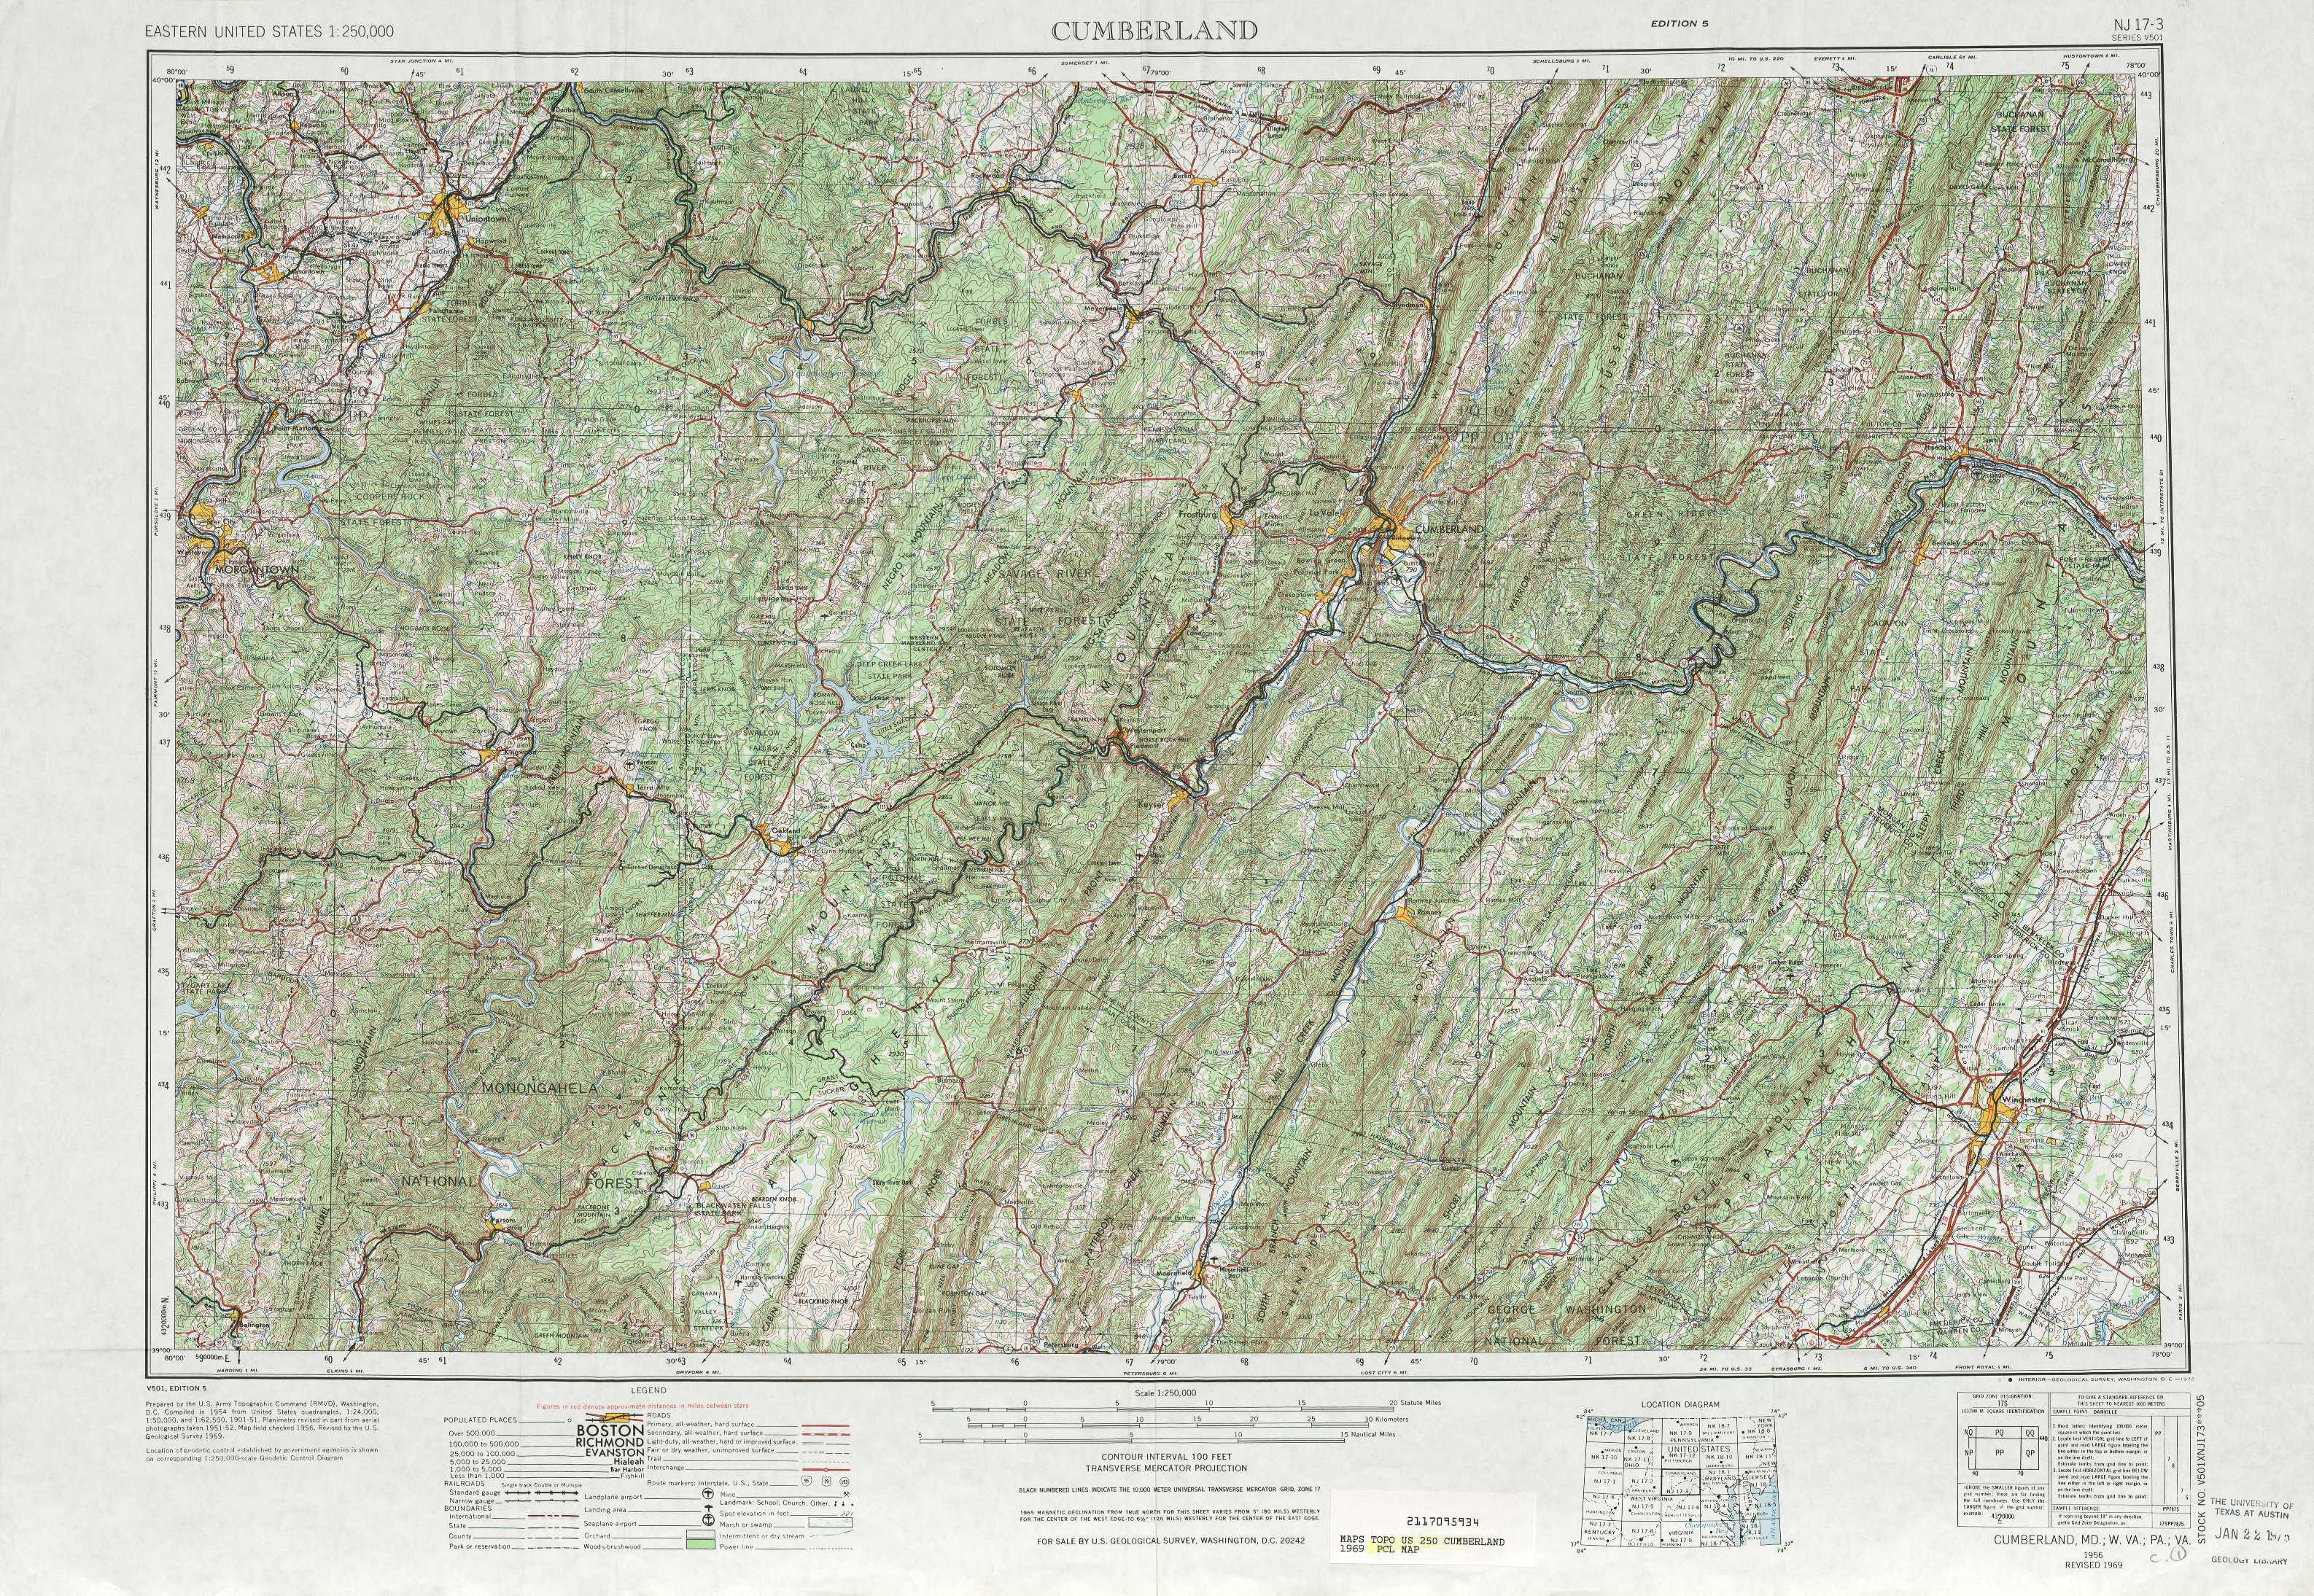 Cumberland Topographic Maps WV PA MD VA USGS Topo Quad - Location of cumberland va on the us map